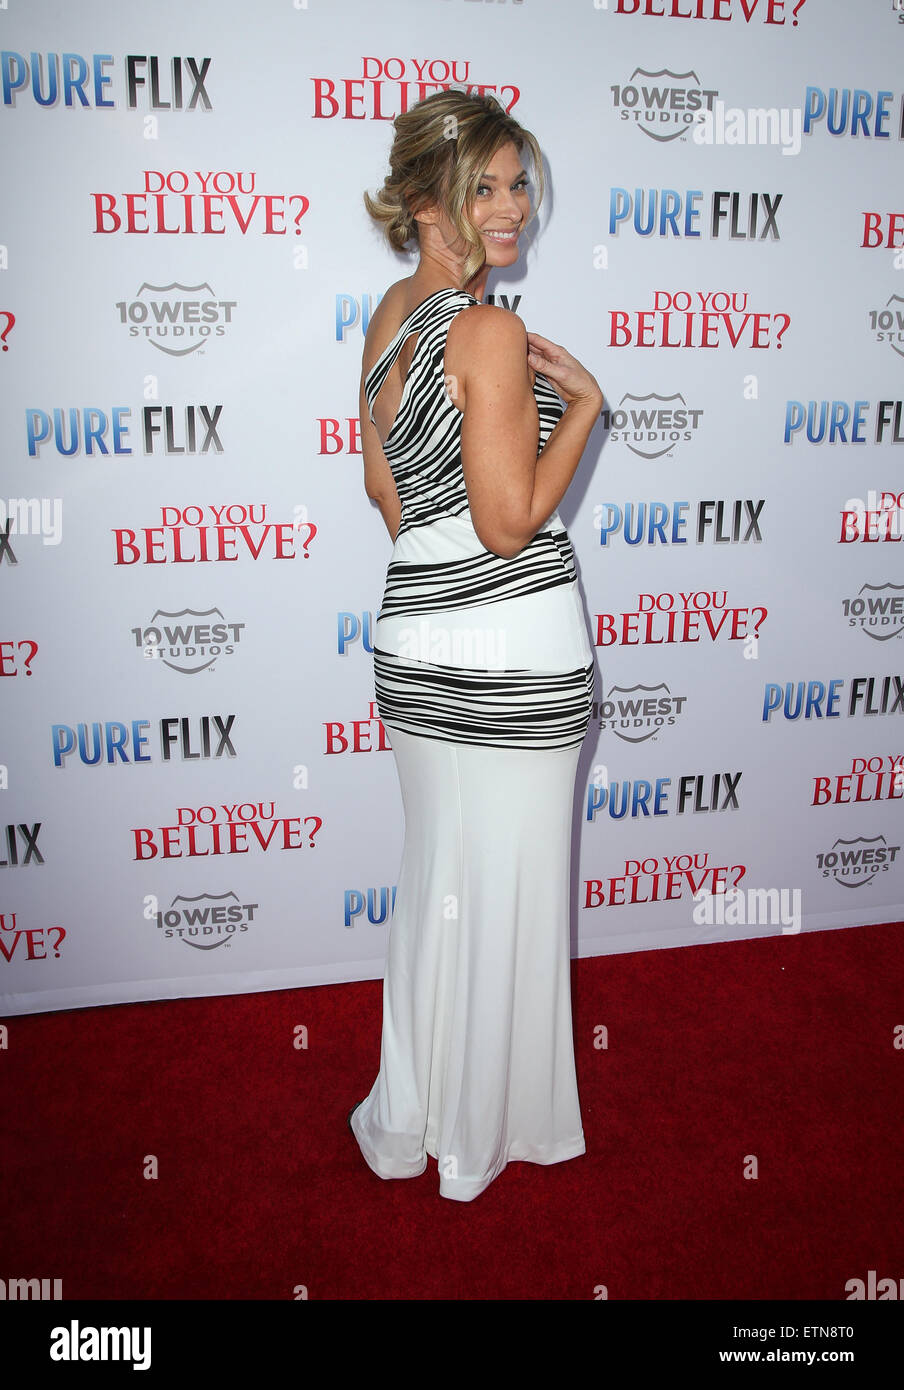 Flixbi Premiere Of Do You Believe Arrivals Featuring Tracy Melchior